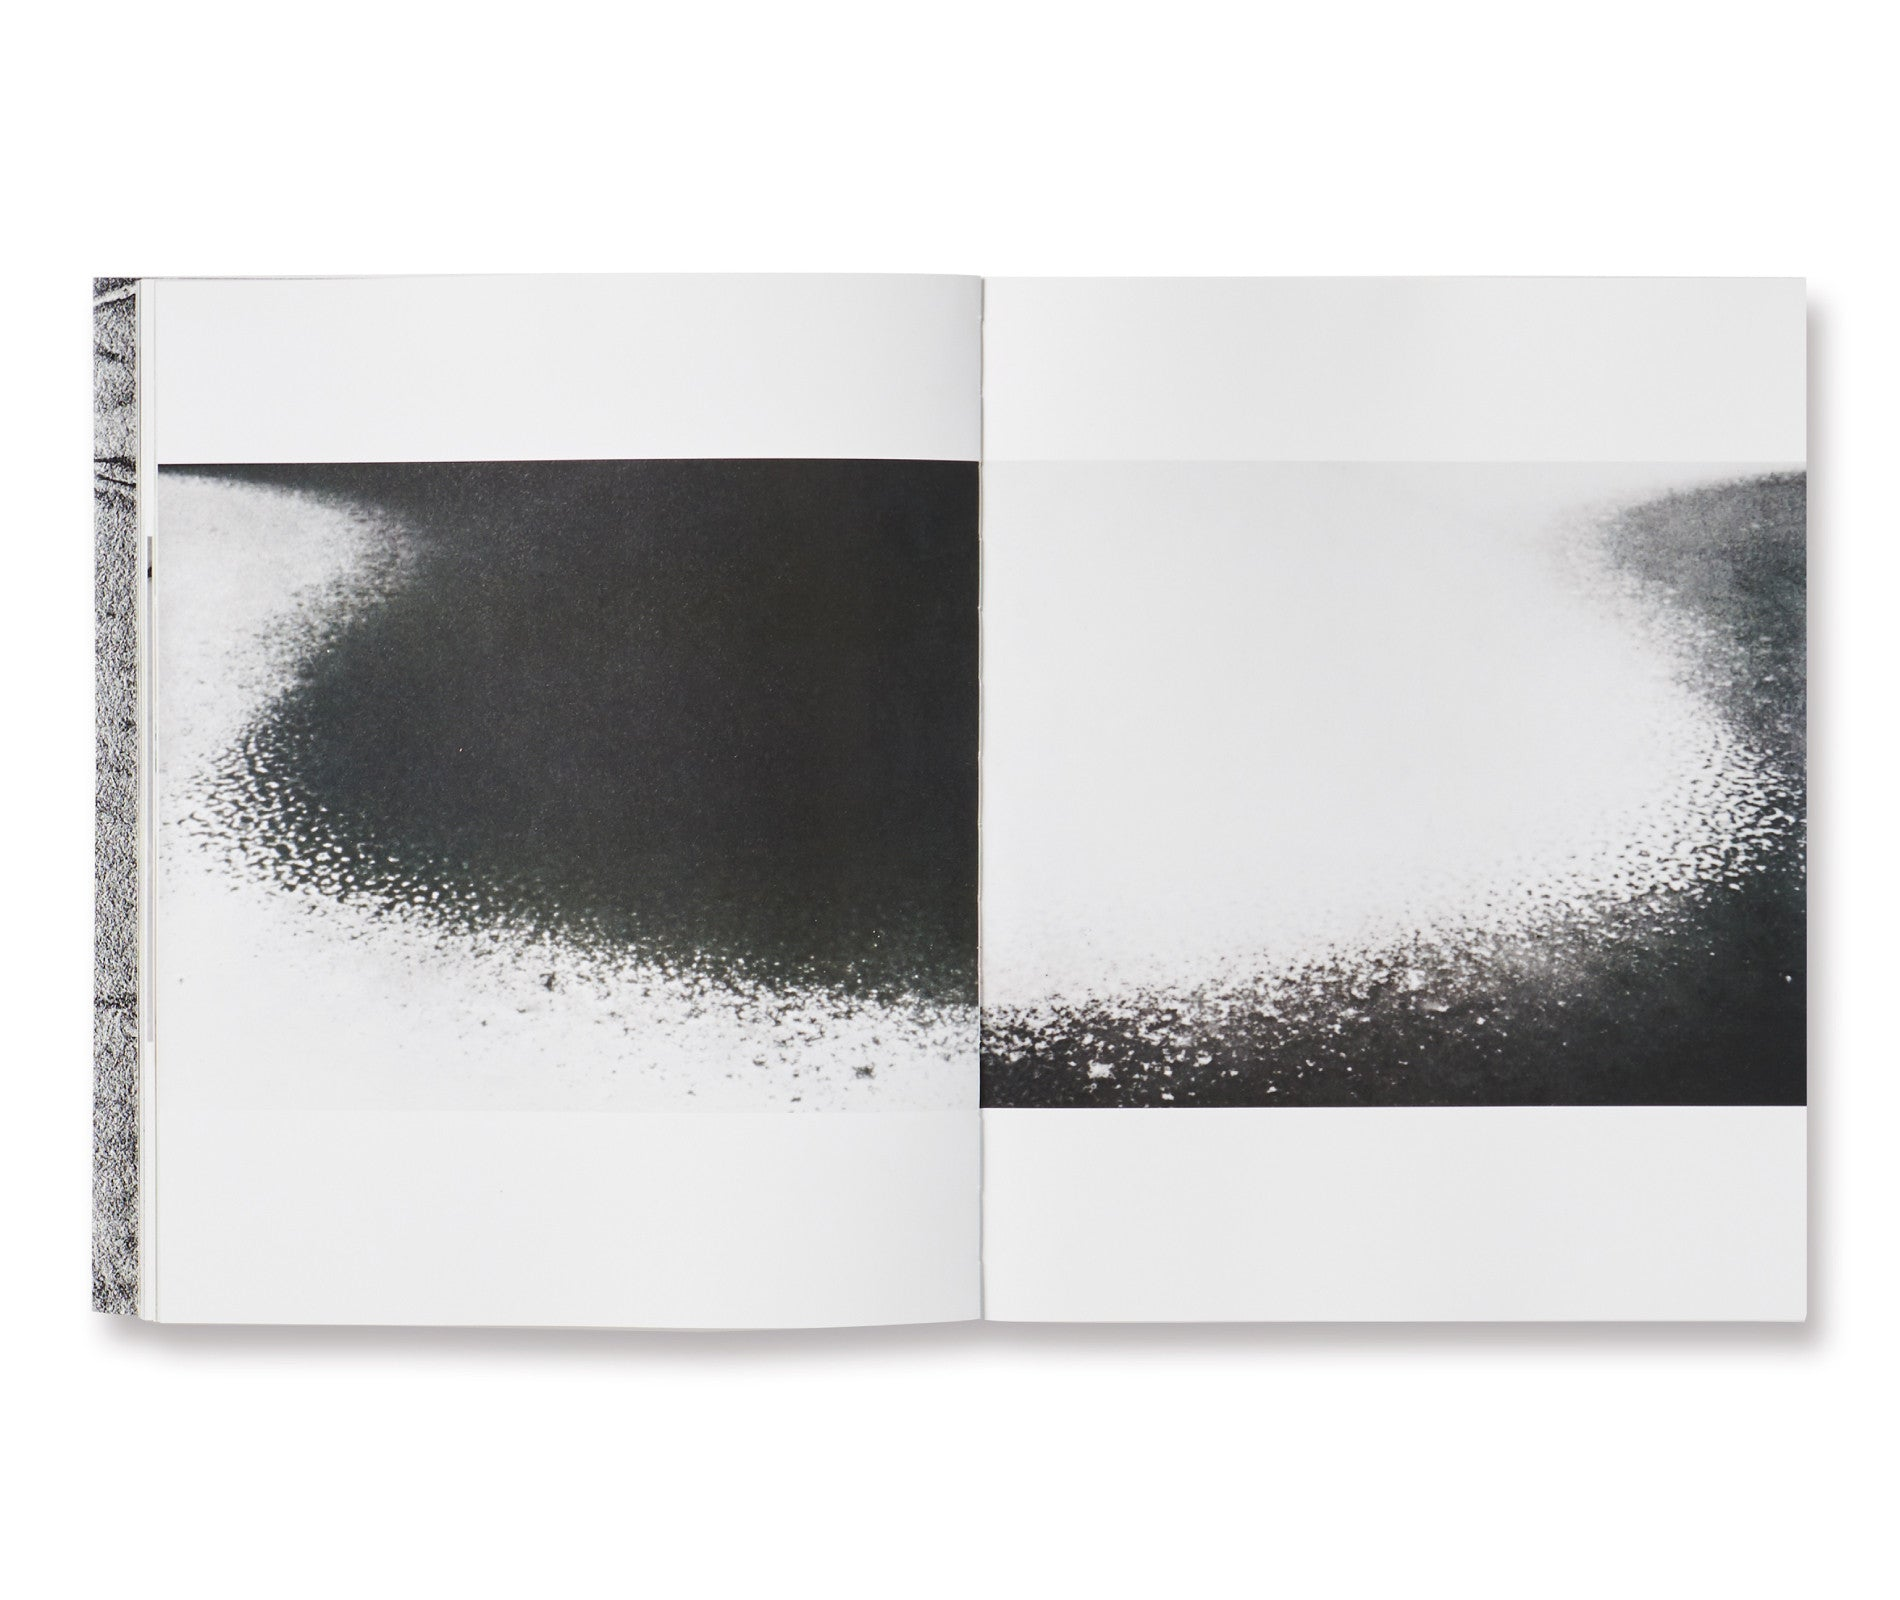 ABSTRACTS by AM projects [SIGNED BY DAISUKE YOKOTA]